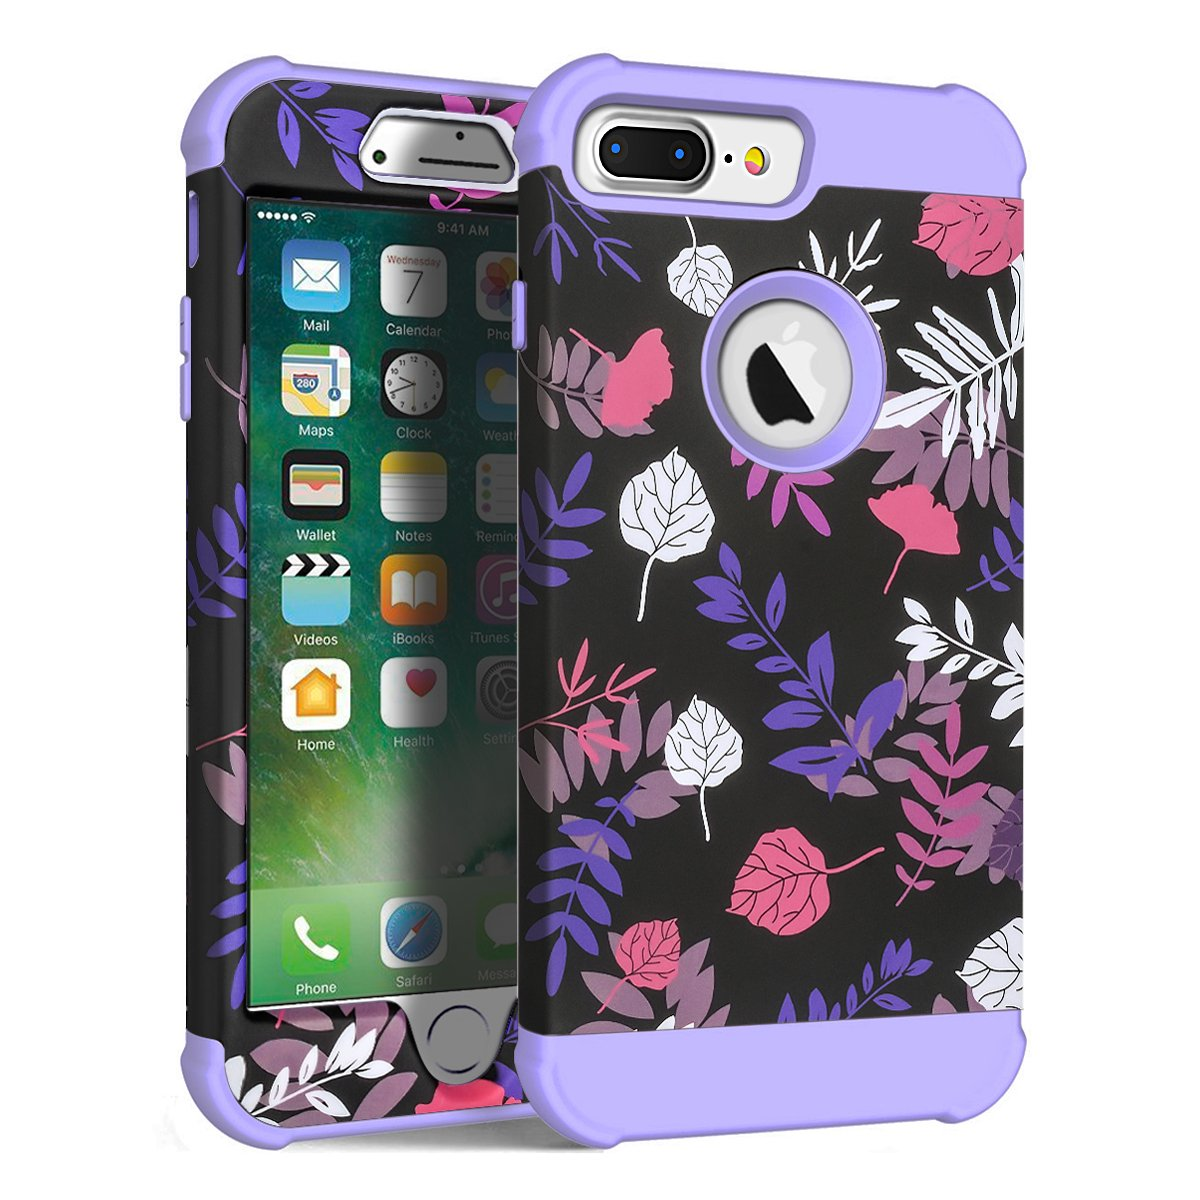 MAXCURY Flower Series Three Layer Heavy Duty Hybrid Sturdy Armor High Impact Resistant Protective Cover Case for iPhone 6 Plus/iPhone 6s Plus/iPhone 7 Plus/iPhone 8 Plus in 5.5 Inch (Leaf/Lilac)